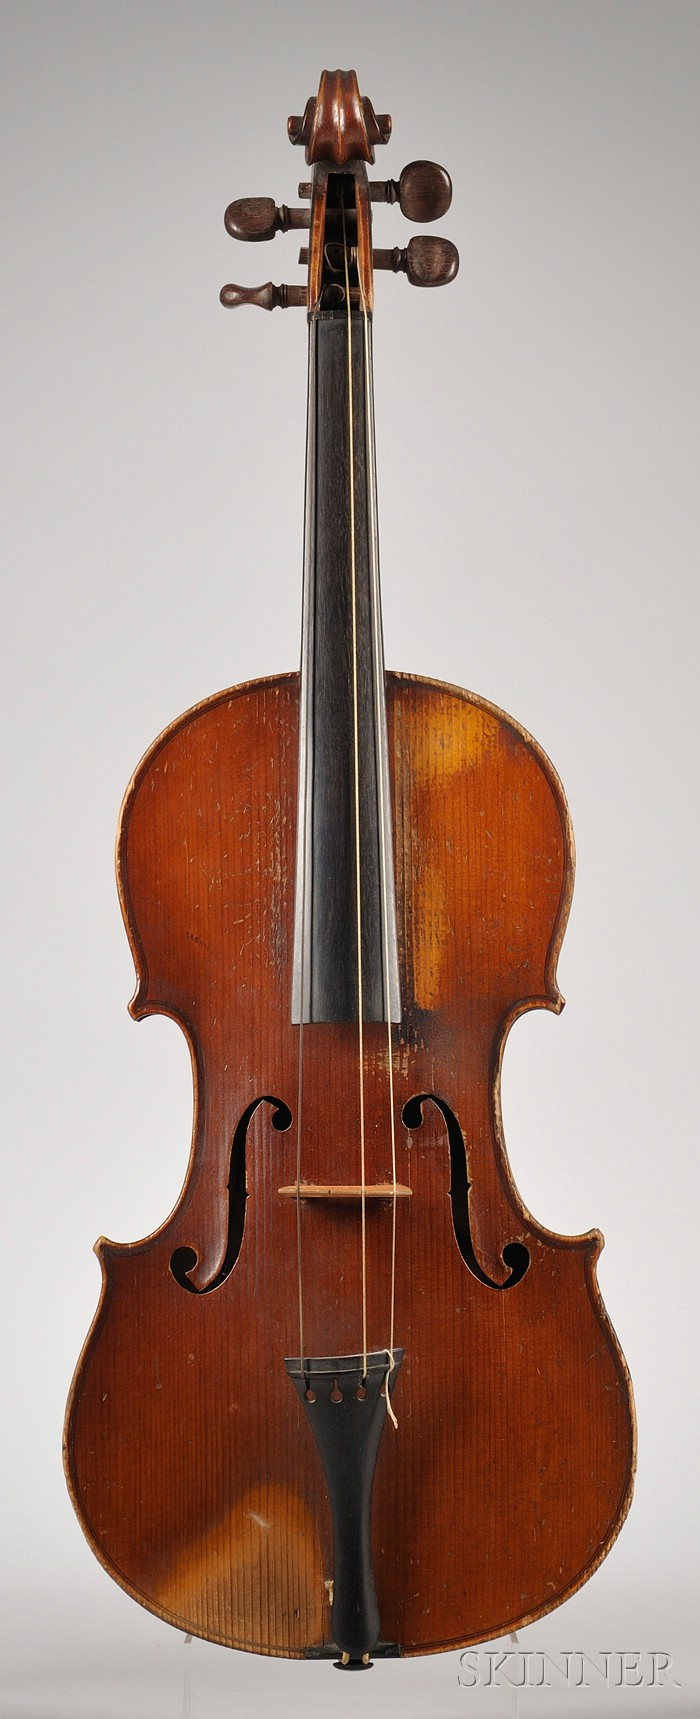 French Violin, Charles Buthod Workshop, Mirecourt, c. 1880